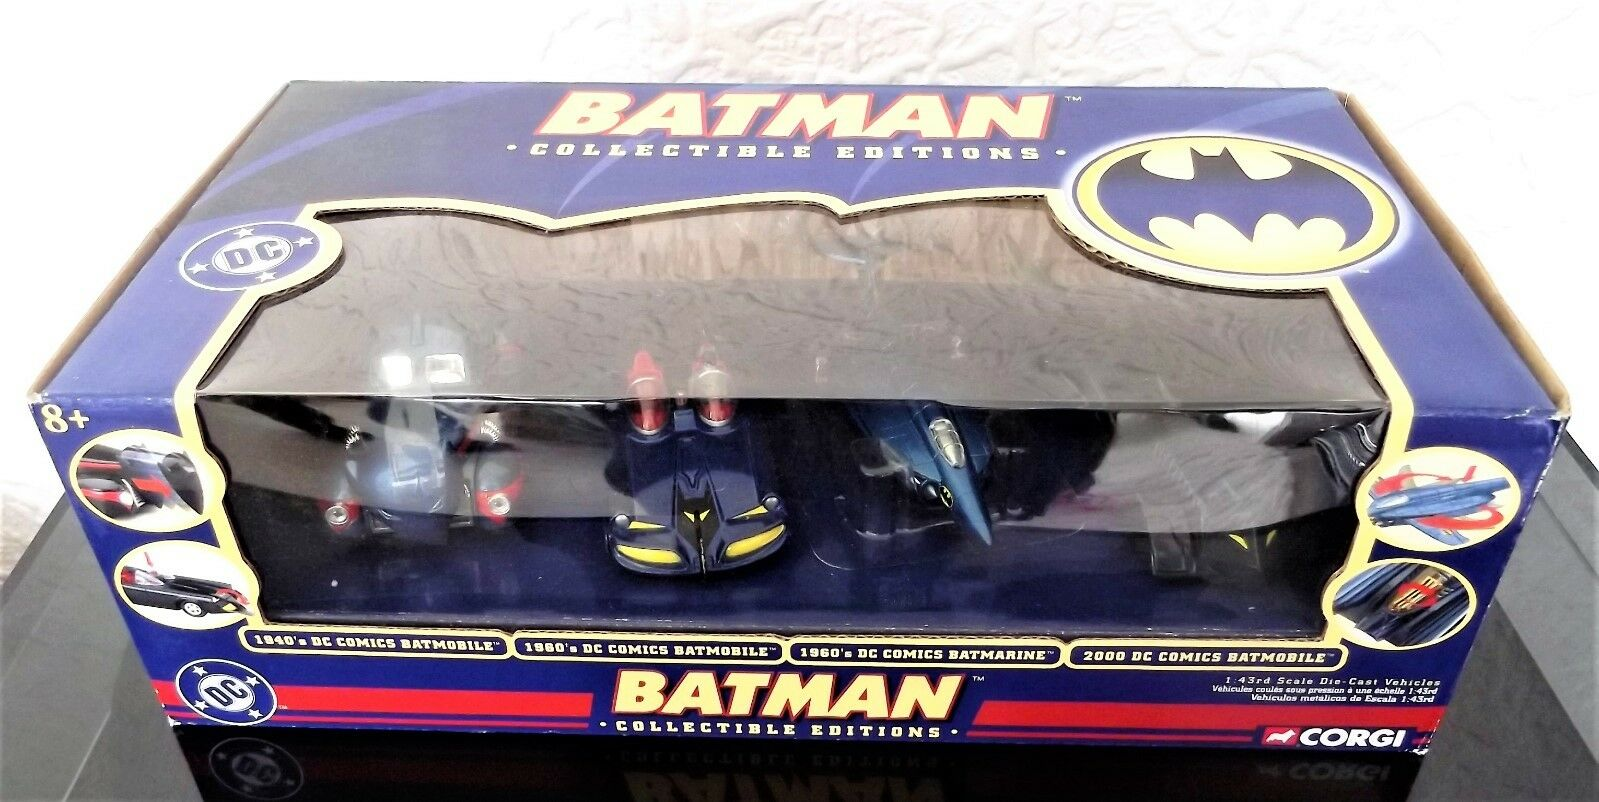 BATMAN RARE CORGI BATMAN COLLECTABLE EDITIONS 4 PIECE SET